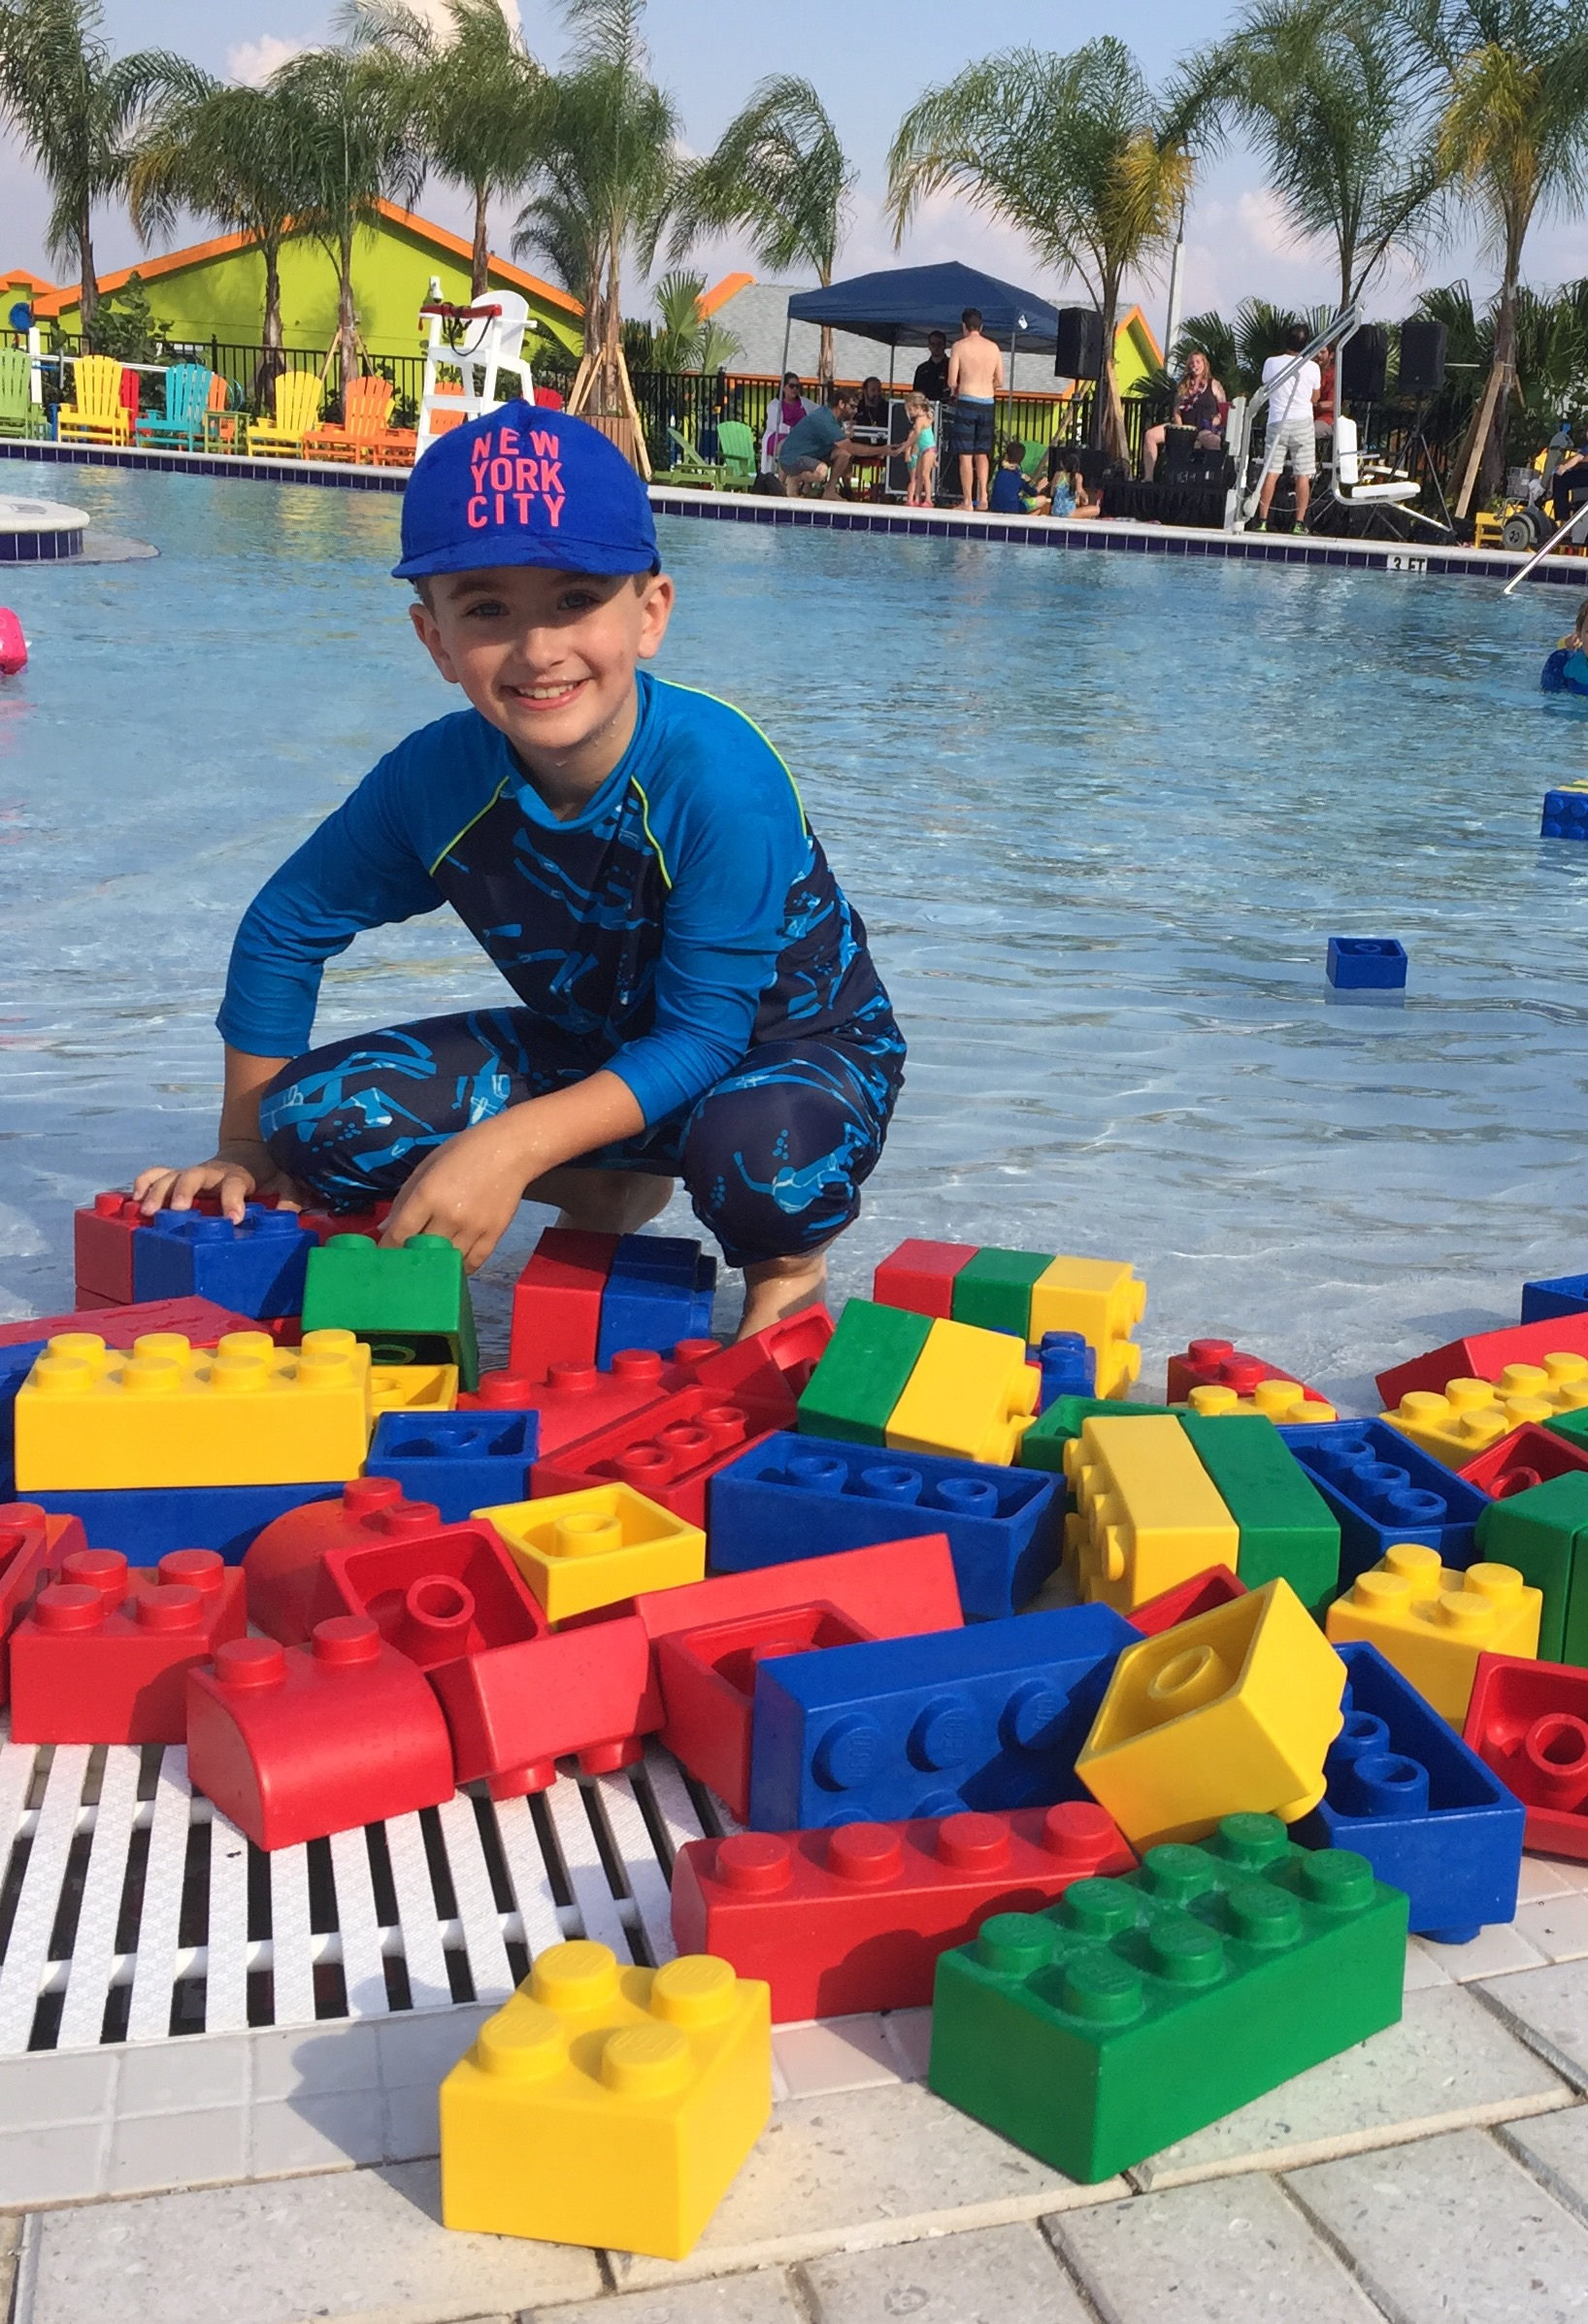 LEGOLAND Beach Retreat - Young boy by a pool with a pile of Lego blocks.